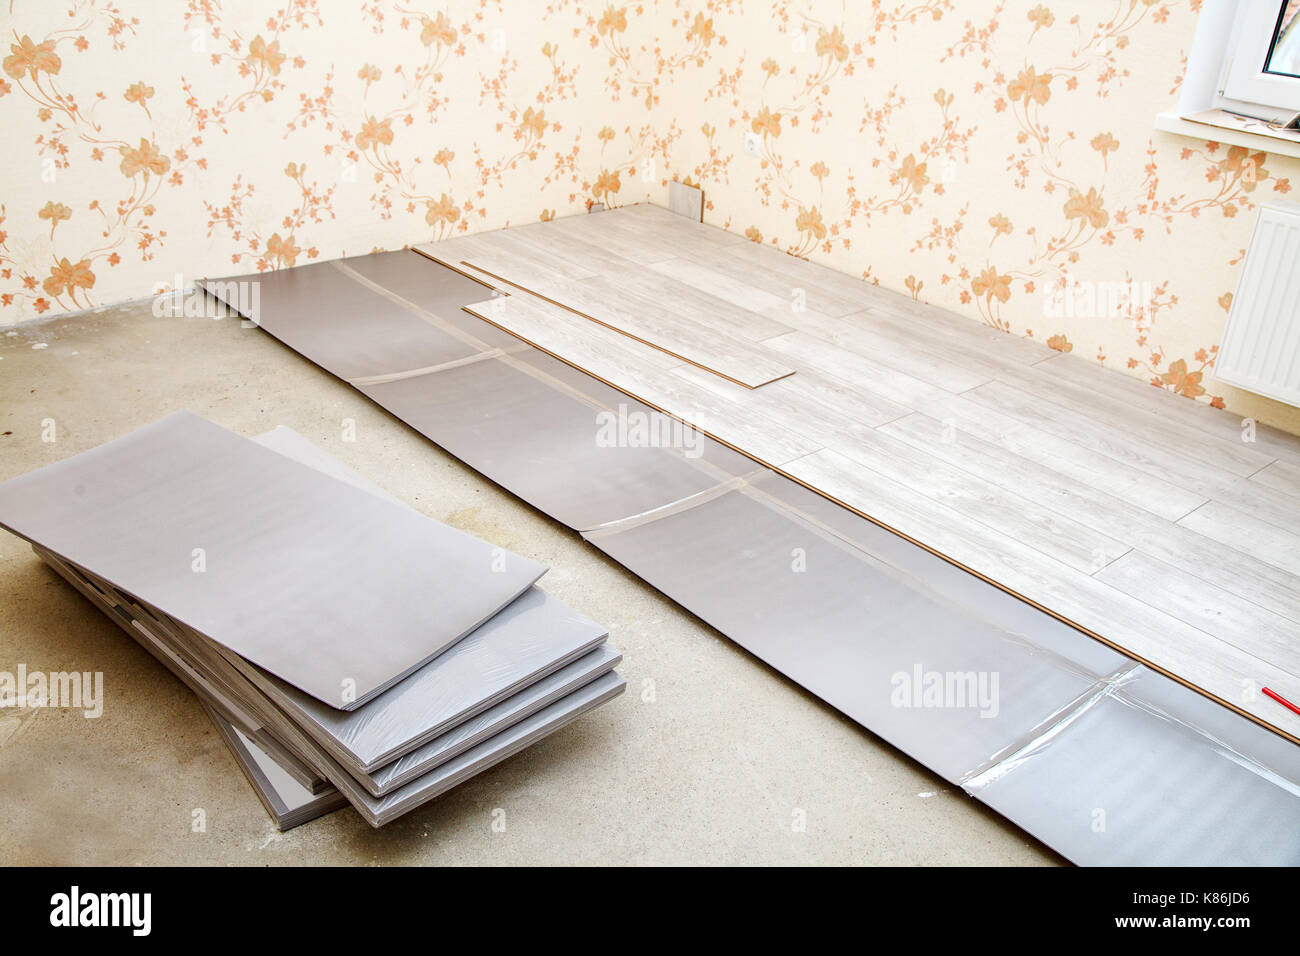 laminate boards prepared for laying on the floor in the room closeup - Stock Image